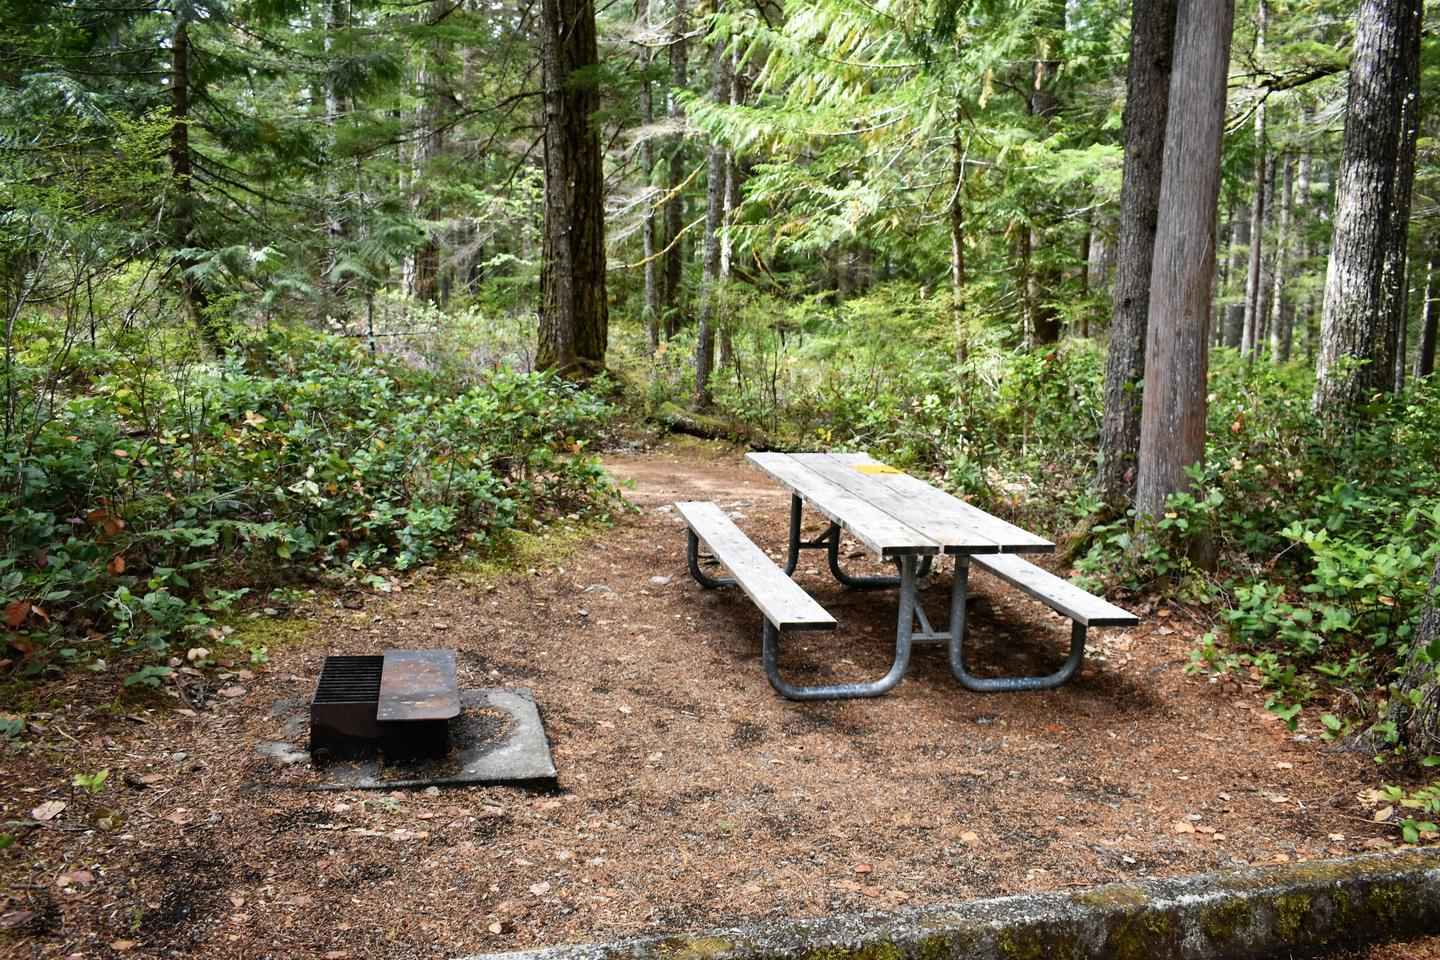 Fire ring, tent area, and picnic tableView of campsite